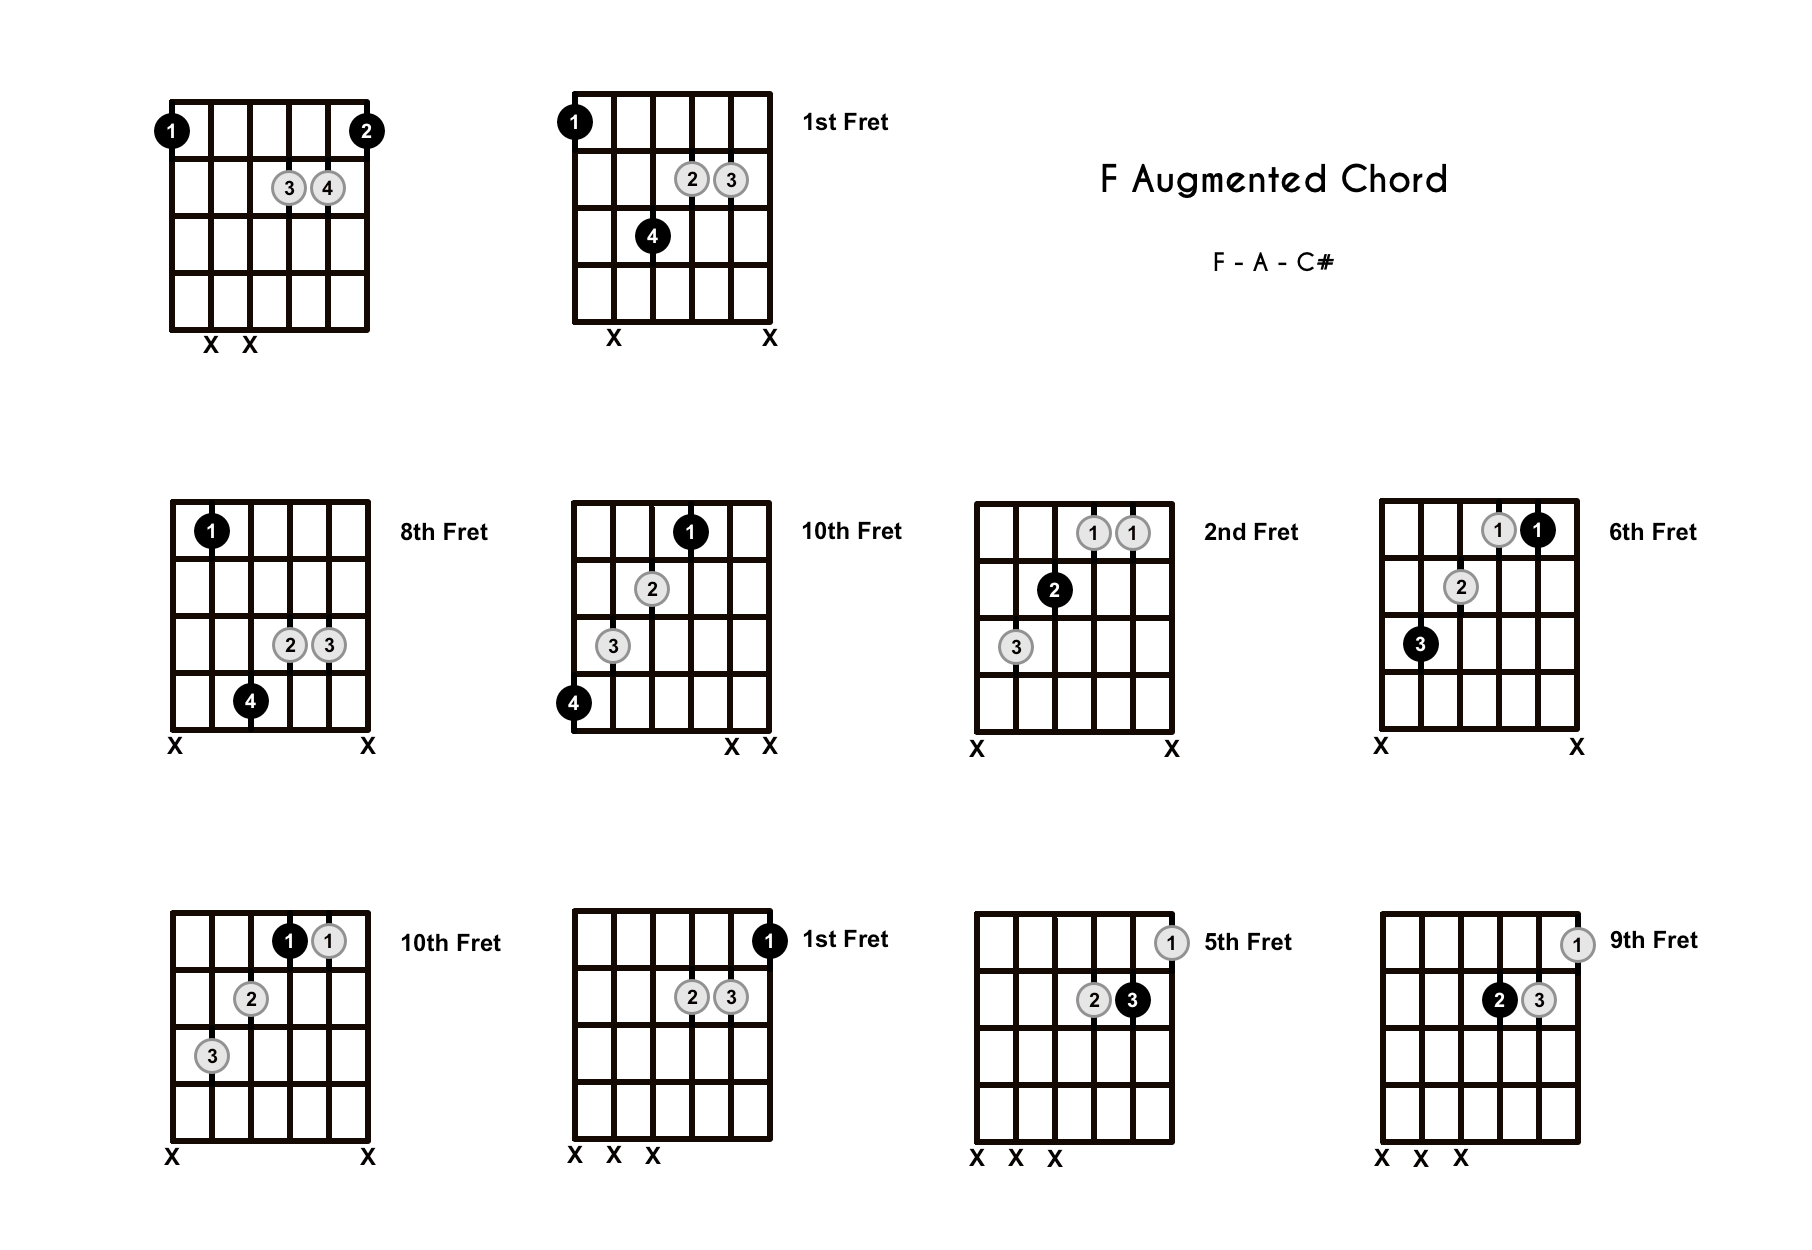 F Augmented Chord on the Guitar (F+) – Diagrams, Finger Positions, Theory